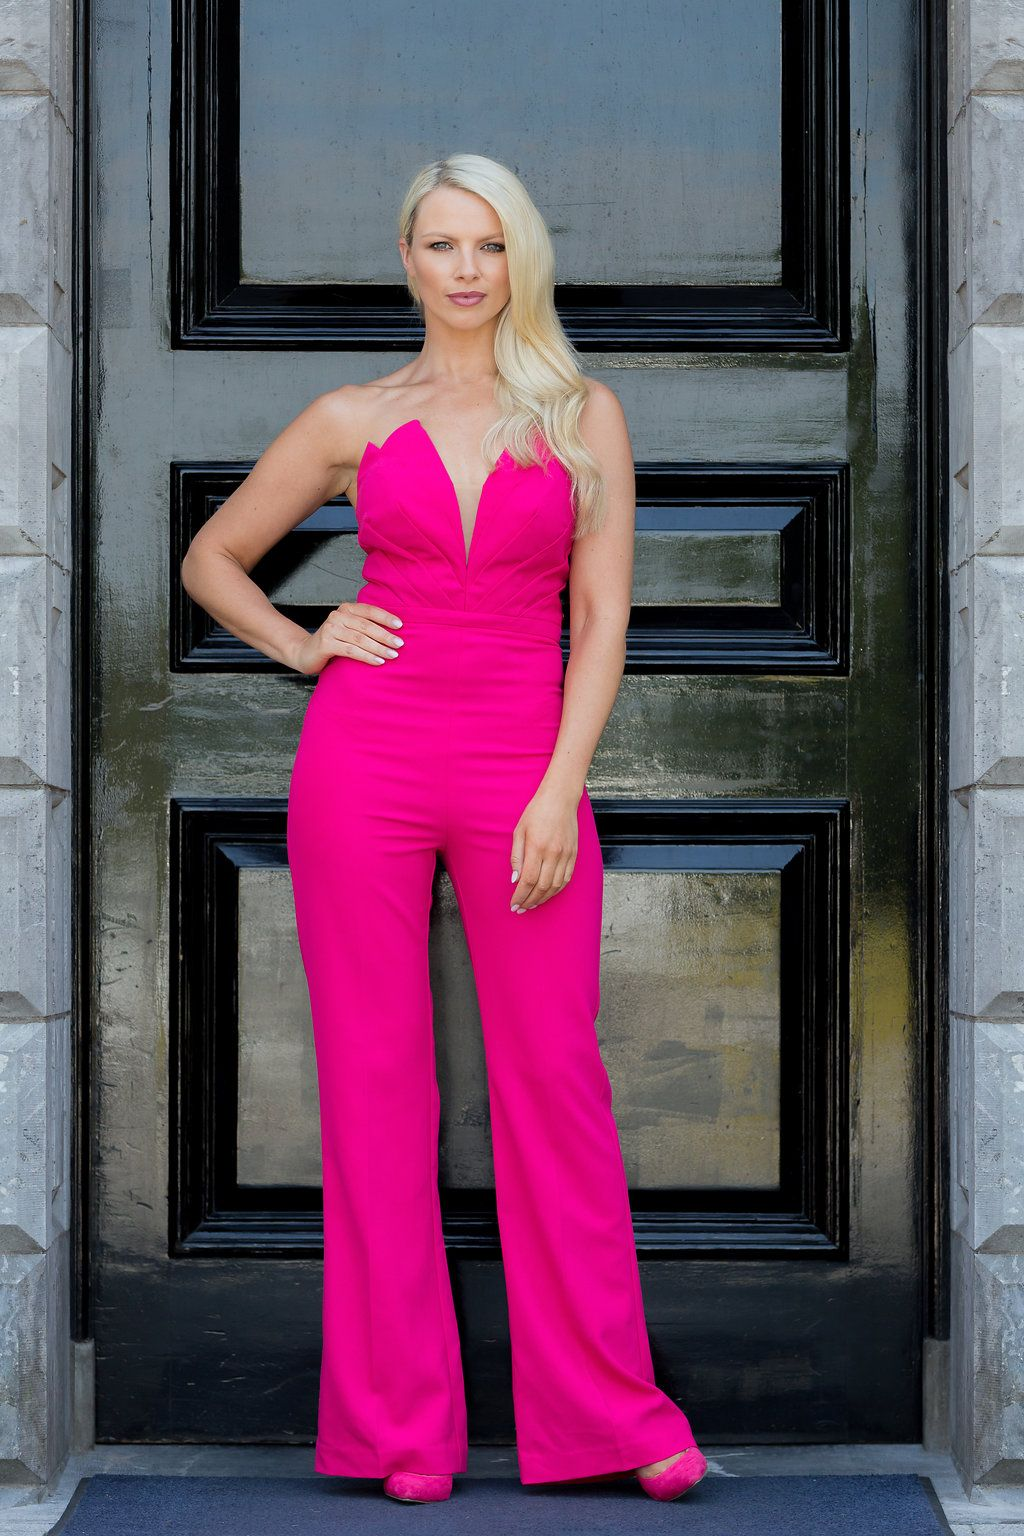 Phoenix V jumpsuit occasion wear